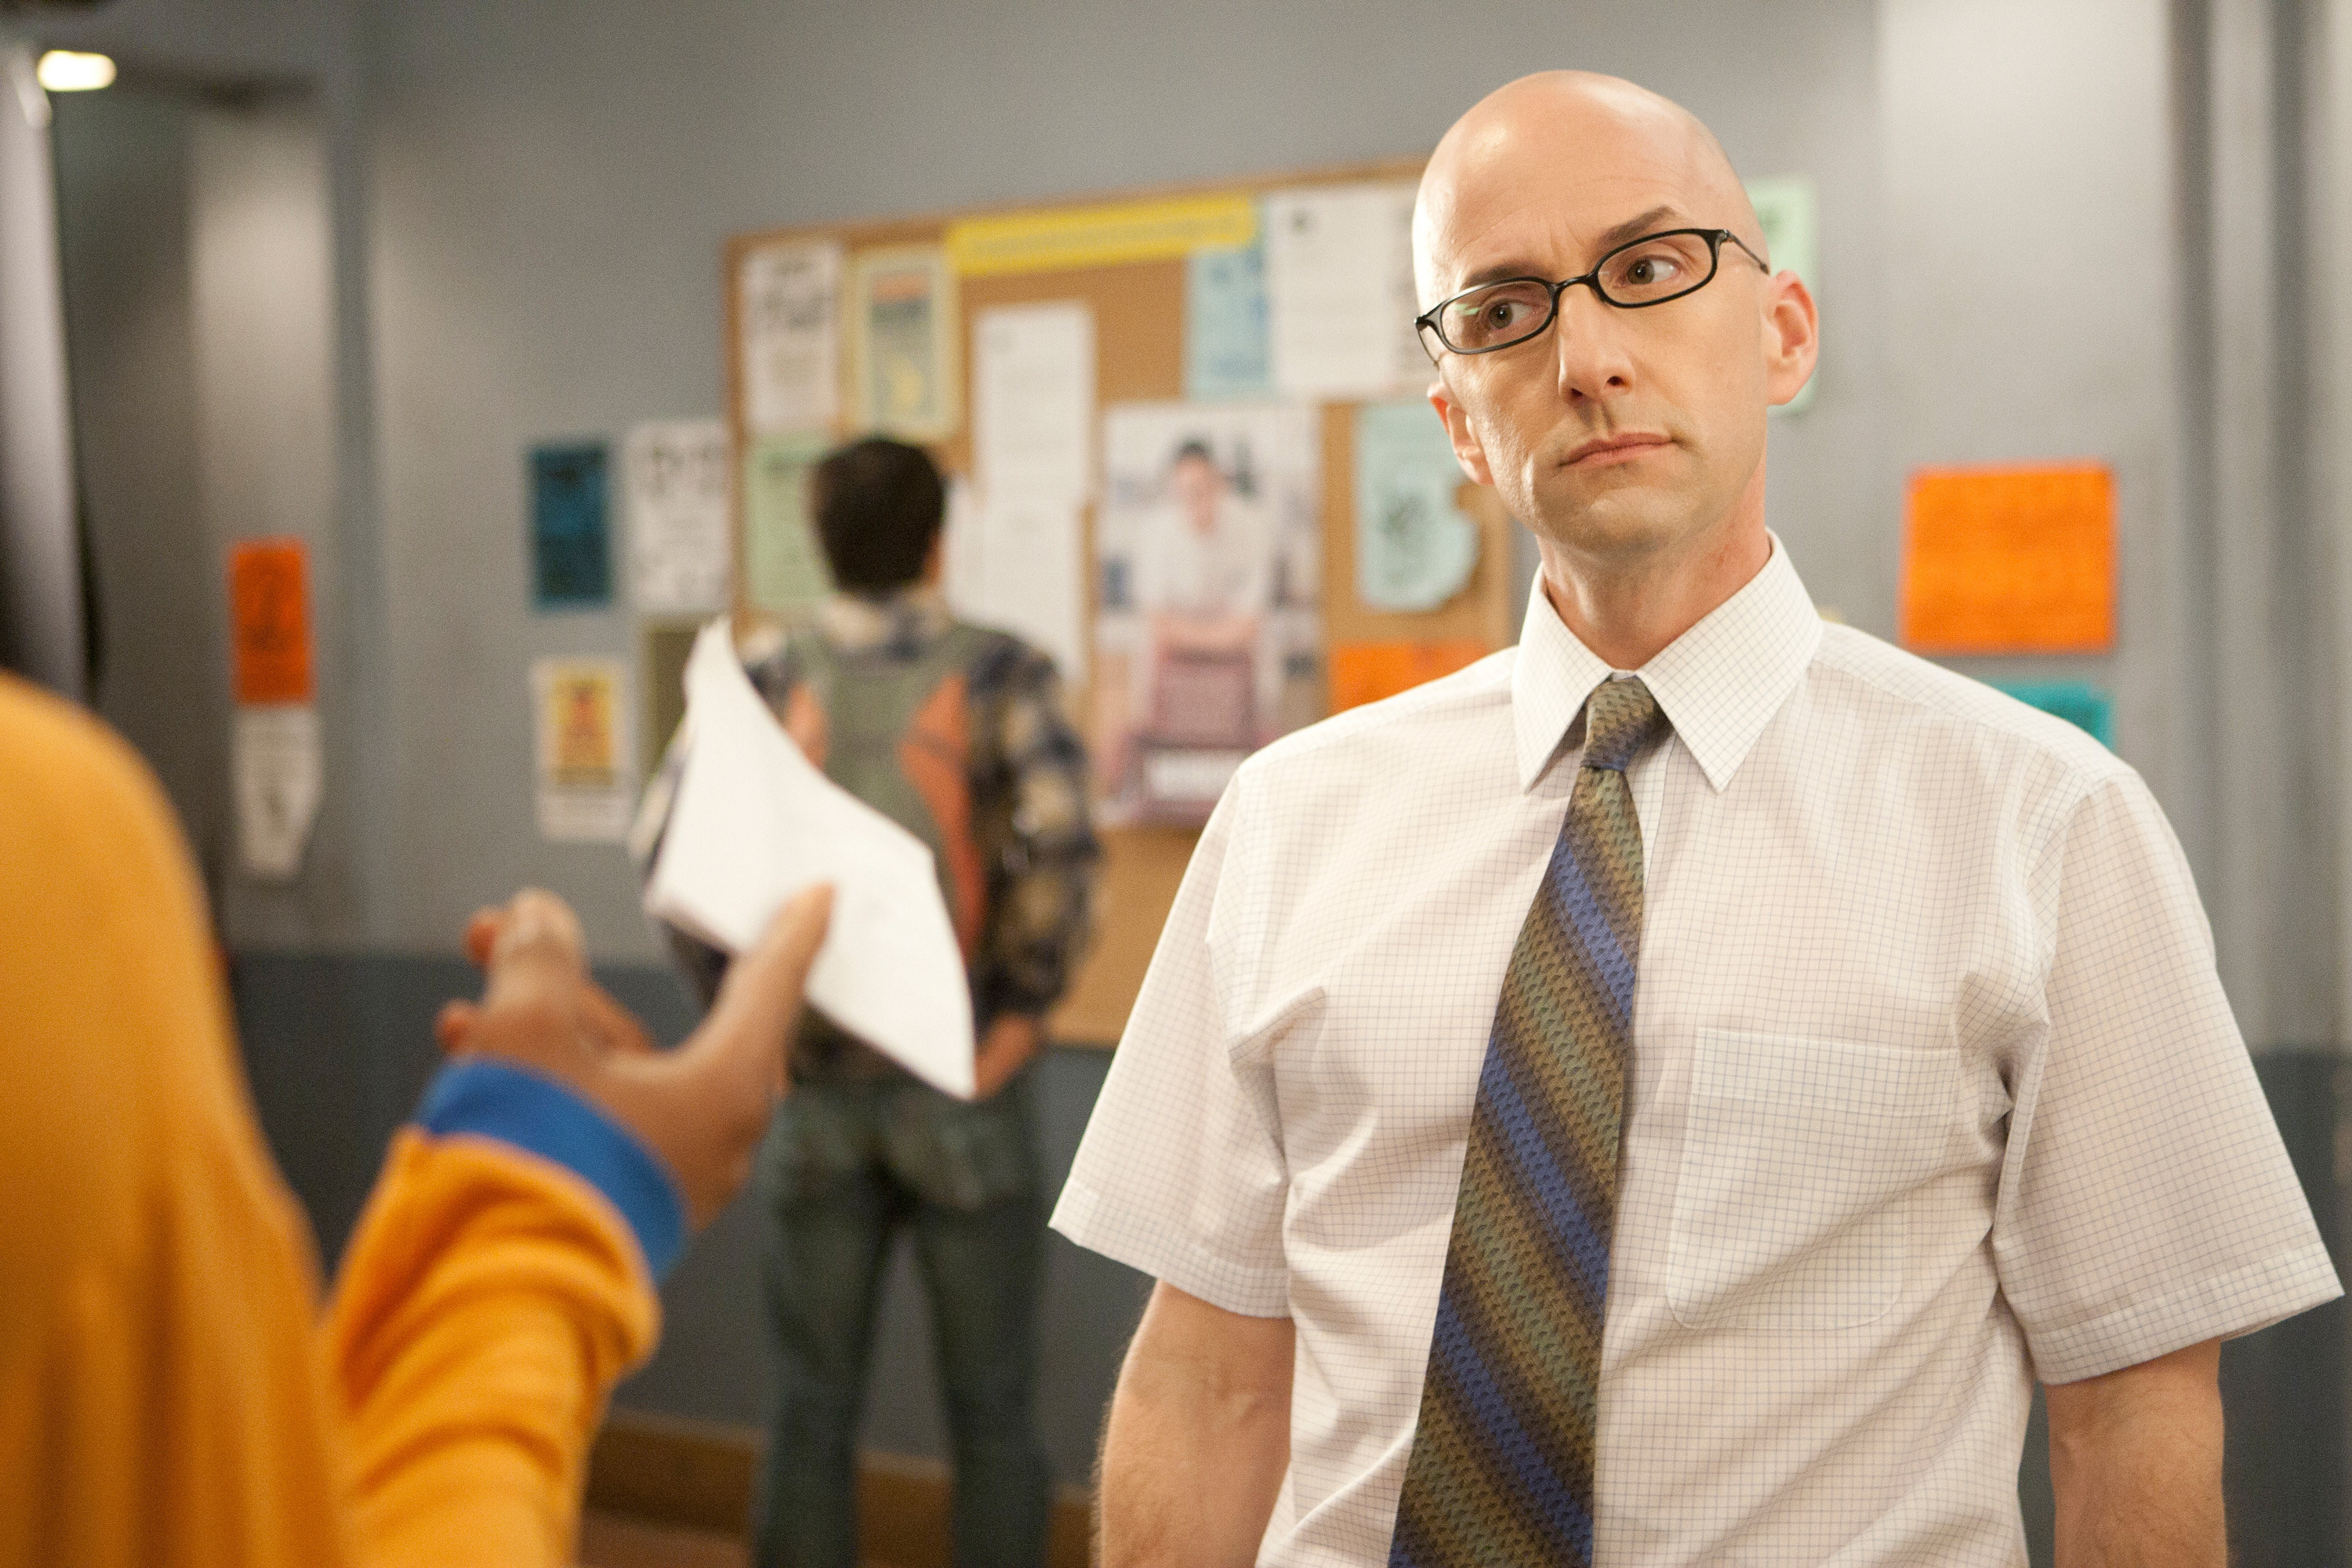 Jim Rash looks at a student inquisitively